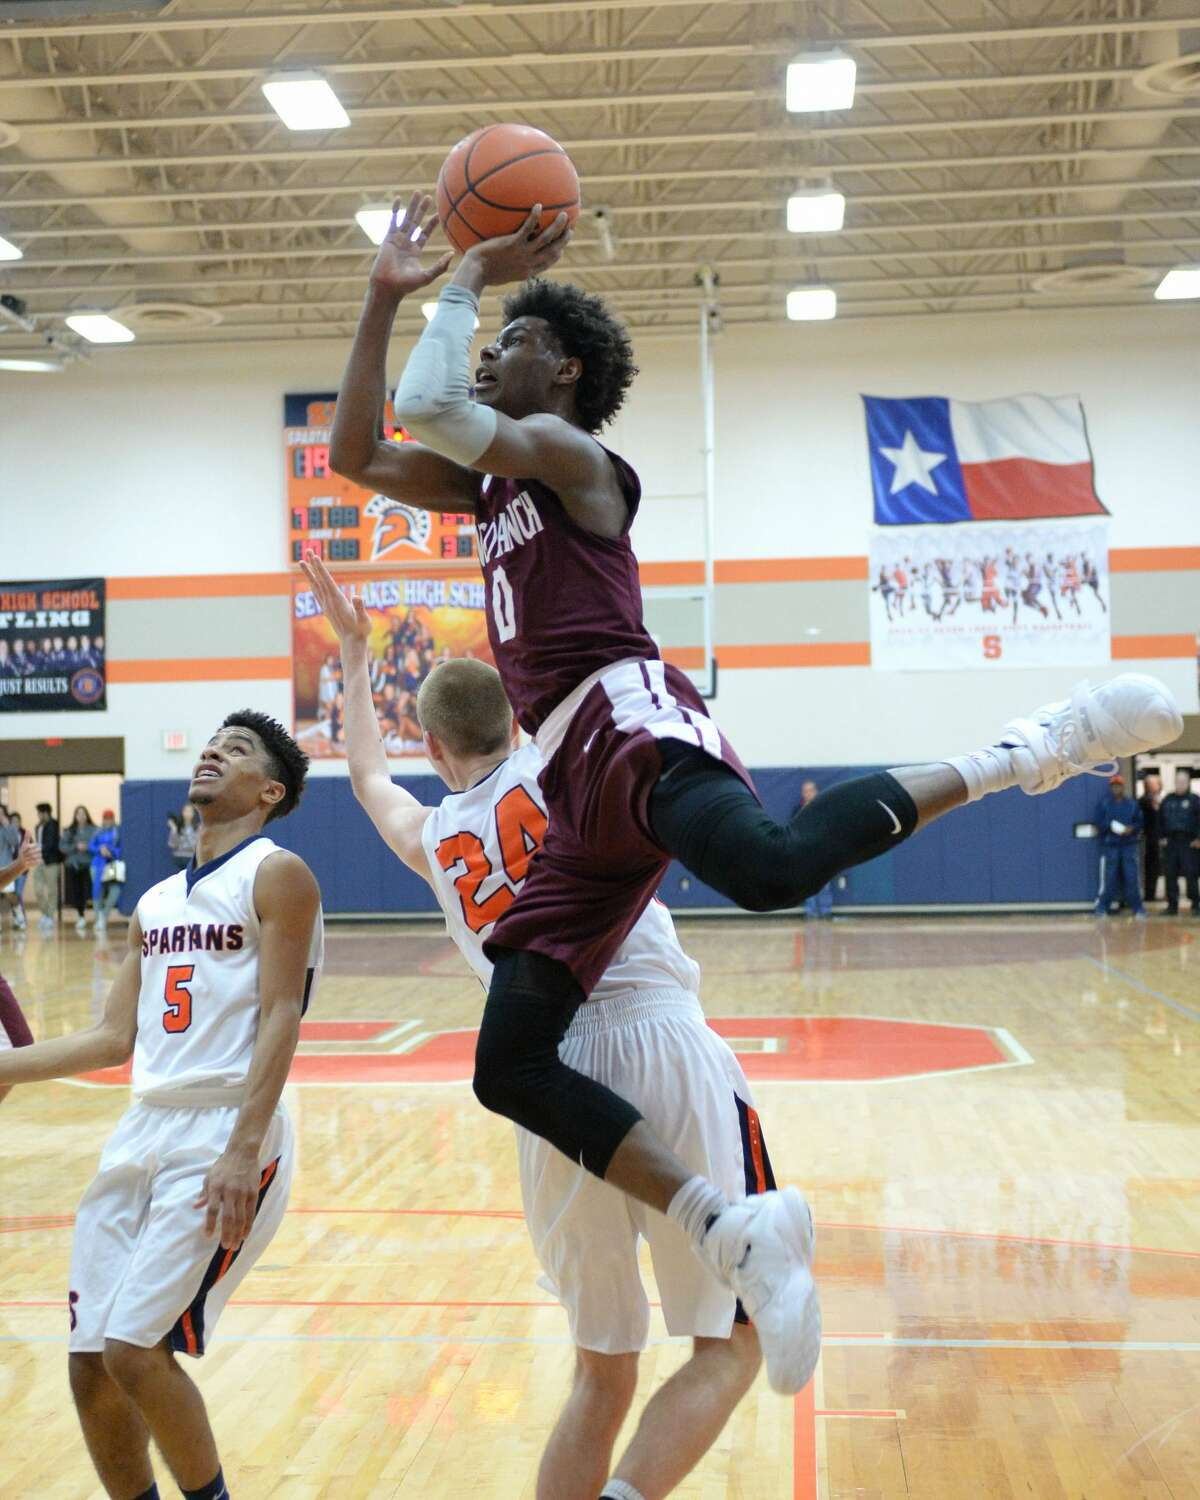 Jay Jay Chandler (0) of Cinco Ranch shoots past Jonathan Howell (24) and Logan West (5) of Seven Lakes during the first half of a boys basketball game between the Cinco Ranch Cougars and the Seven Lakes Spartans on Friday January 6, 2017 at the Seven Lakes HS, Katy, TX.